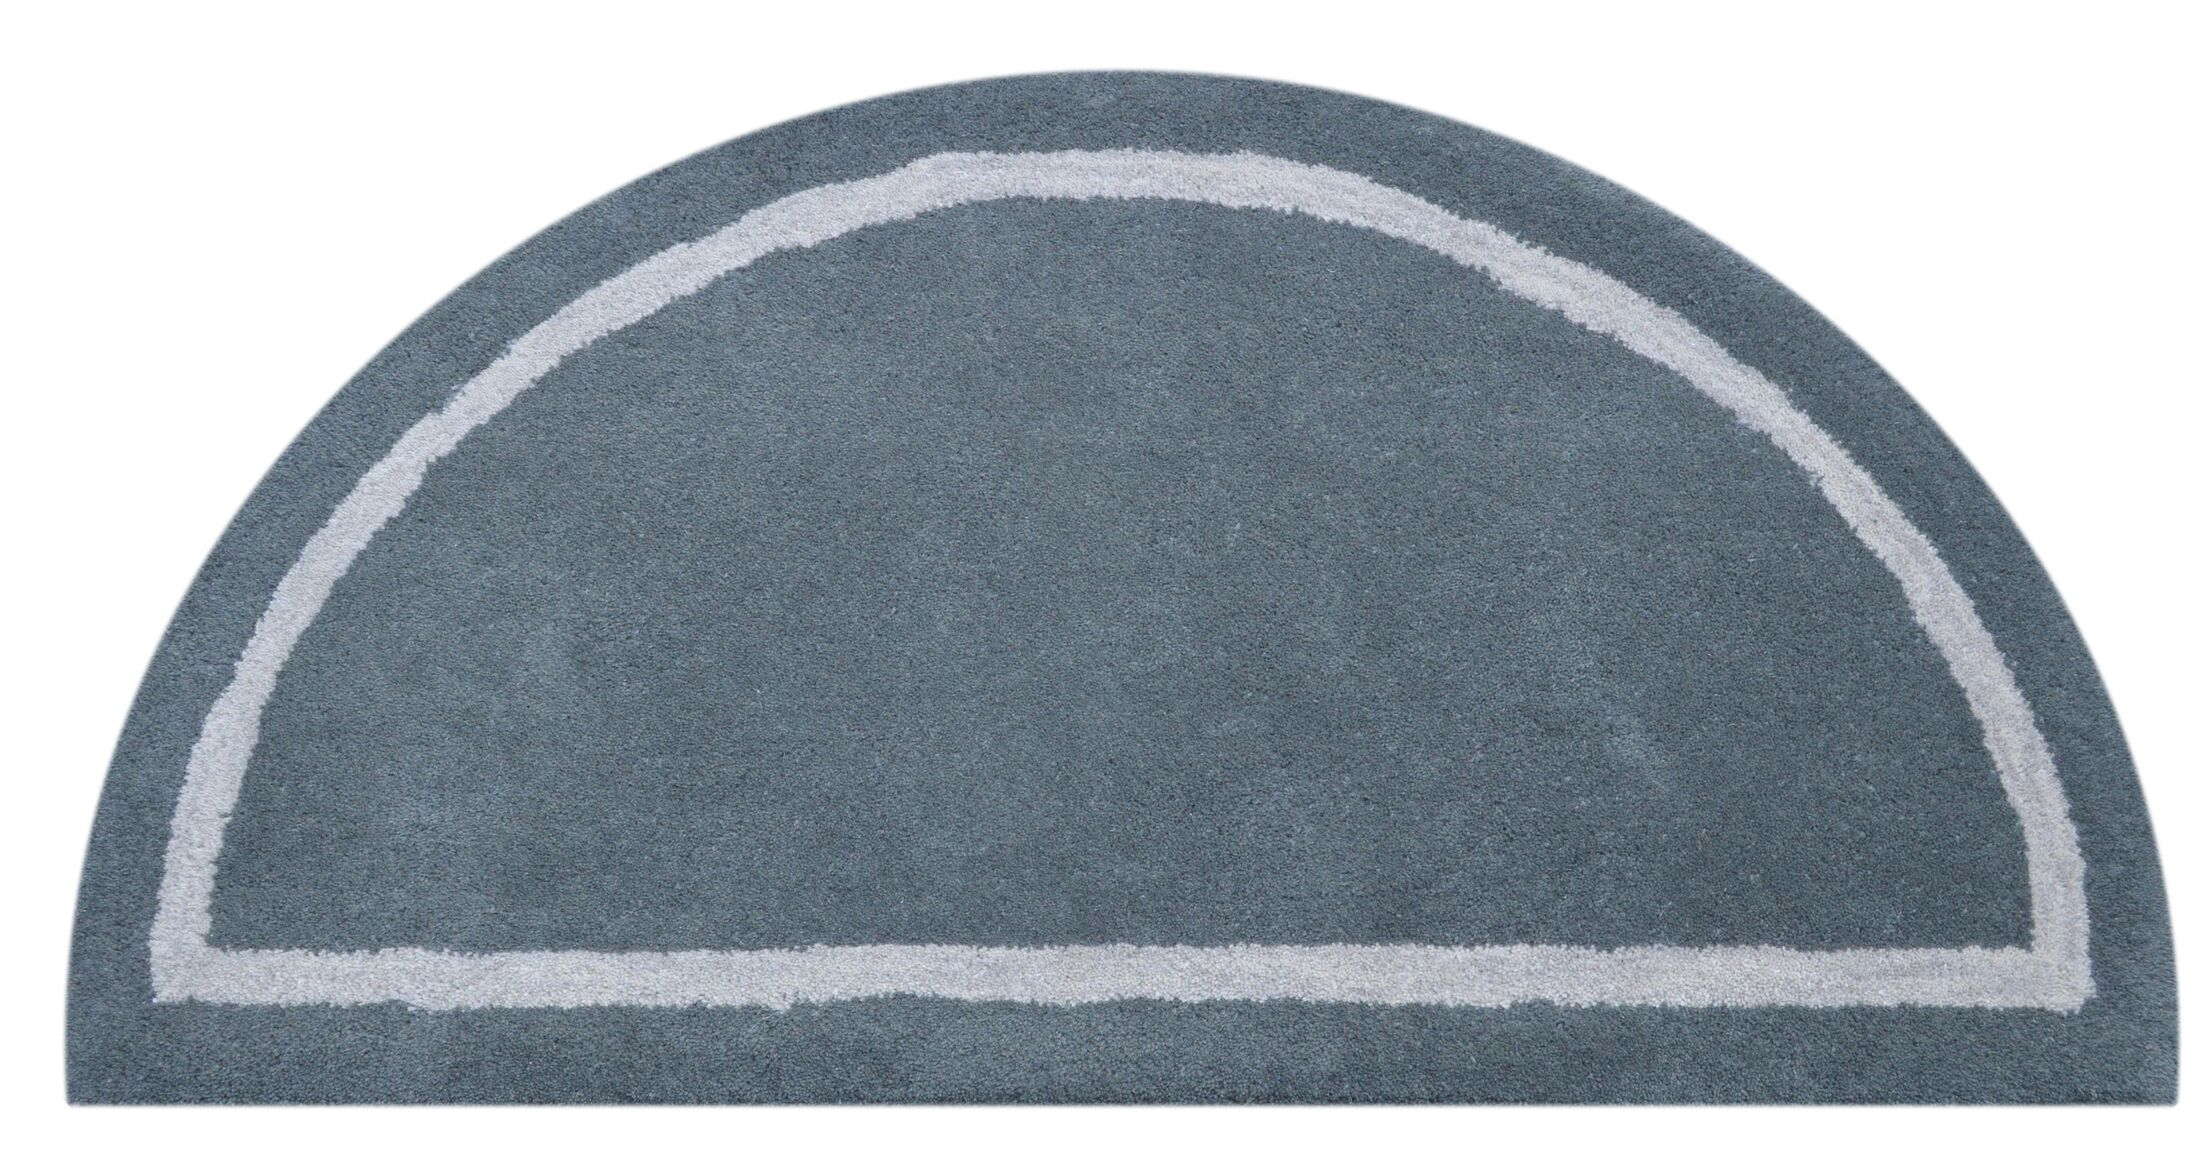 Henley Knotted/Tufted Wool Gray Area Rug Rug Size: Half Round 1'10